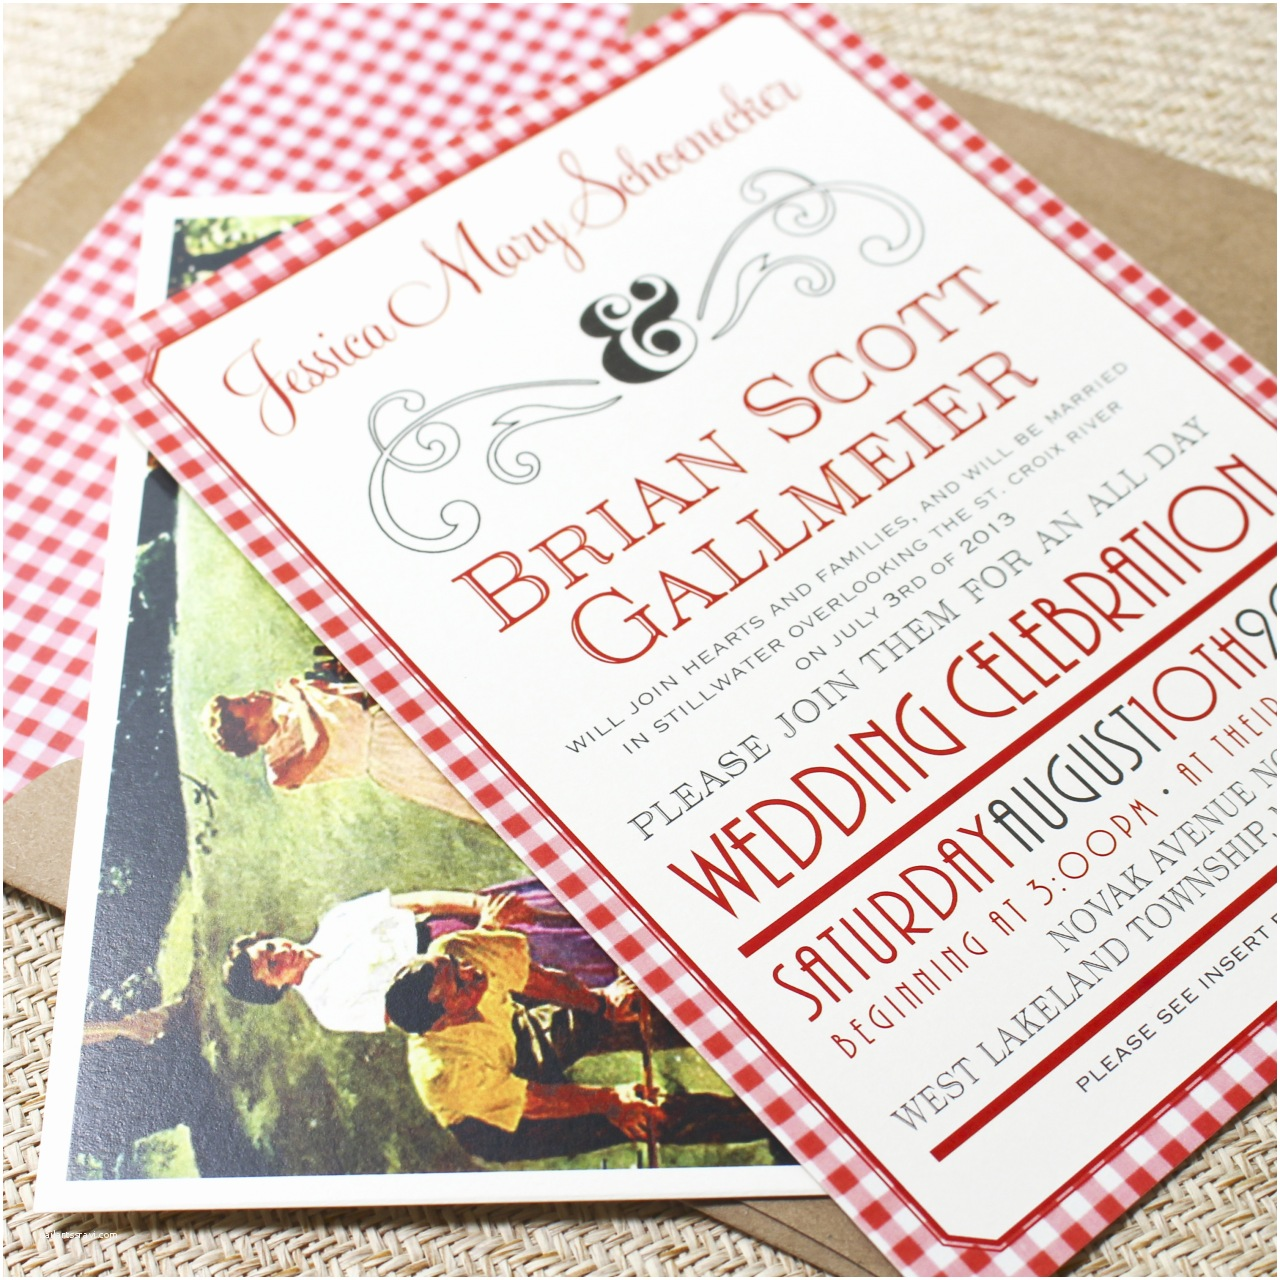 Wedding Invitations Stillwater Mn Picnic Celebration Flat Card Wedding Invitation West